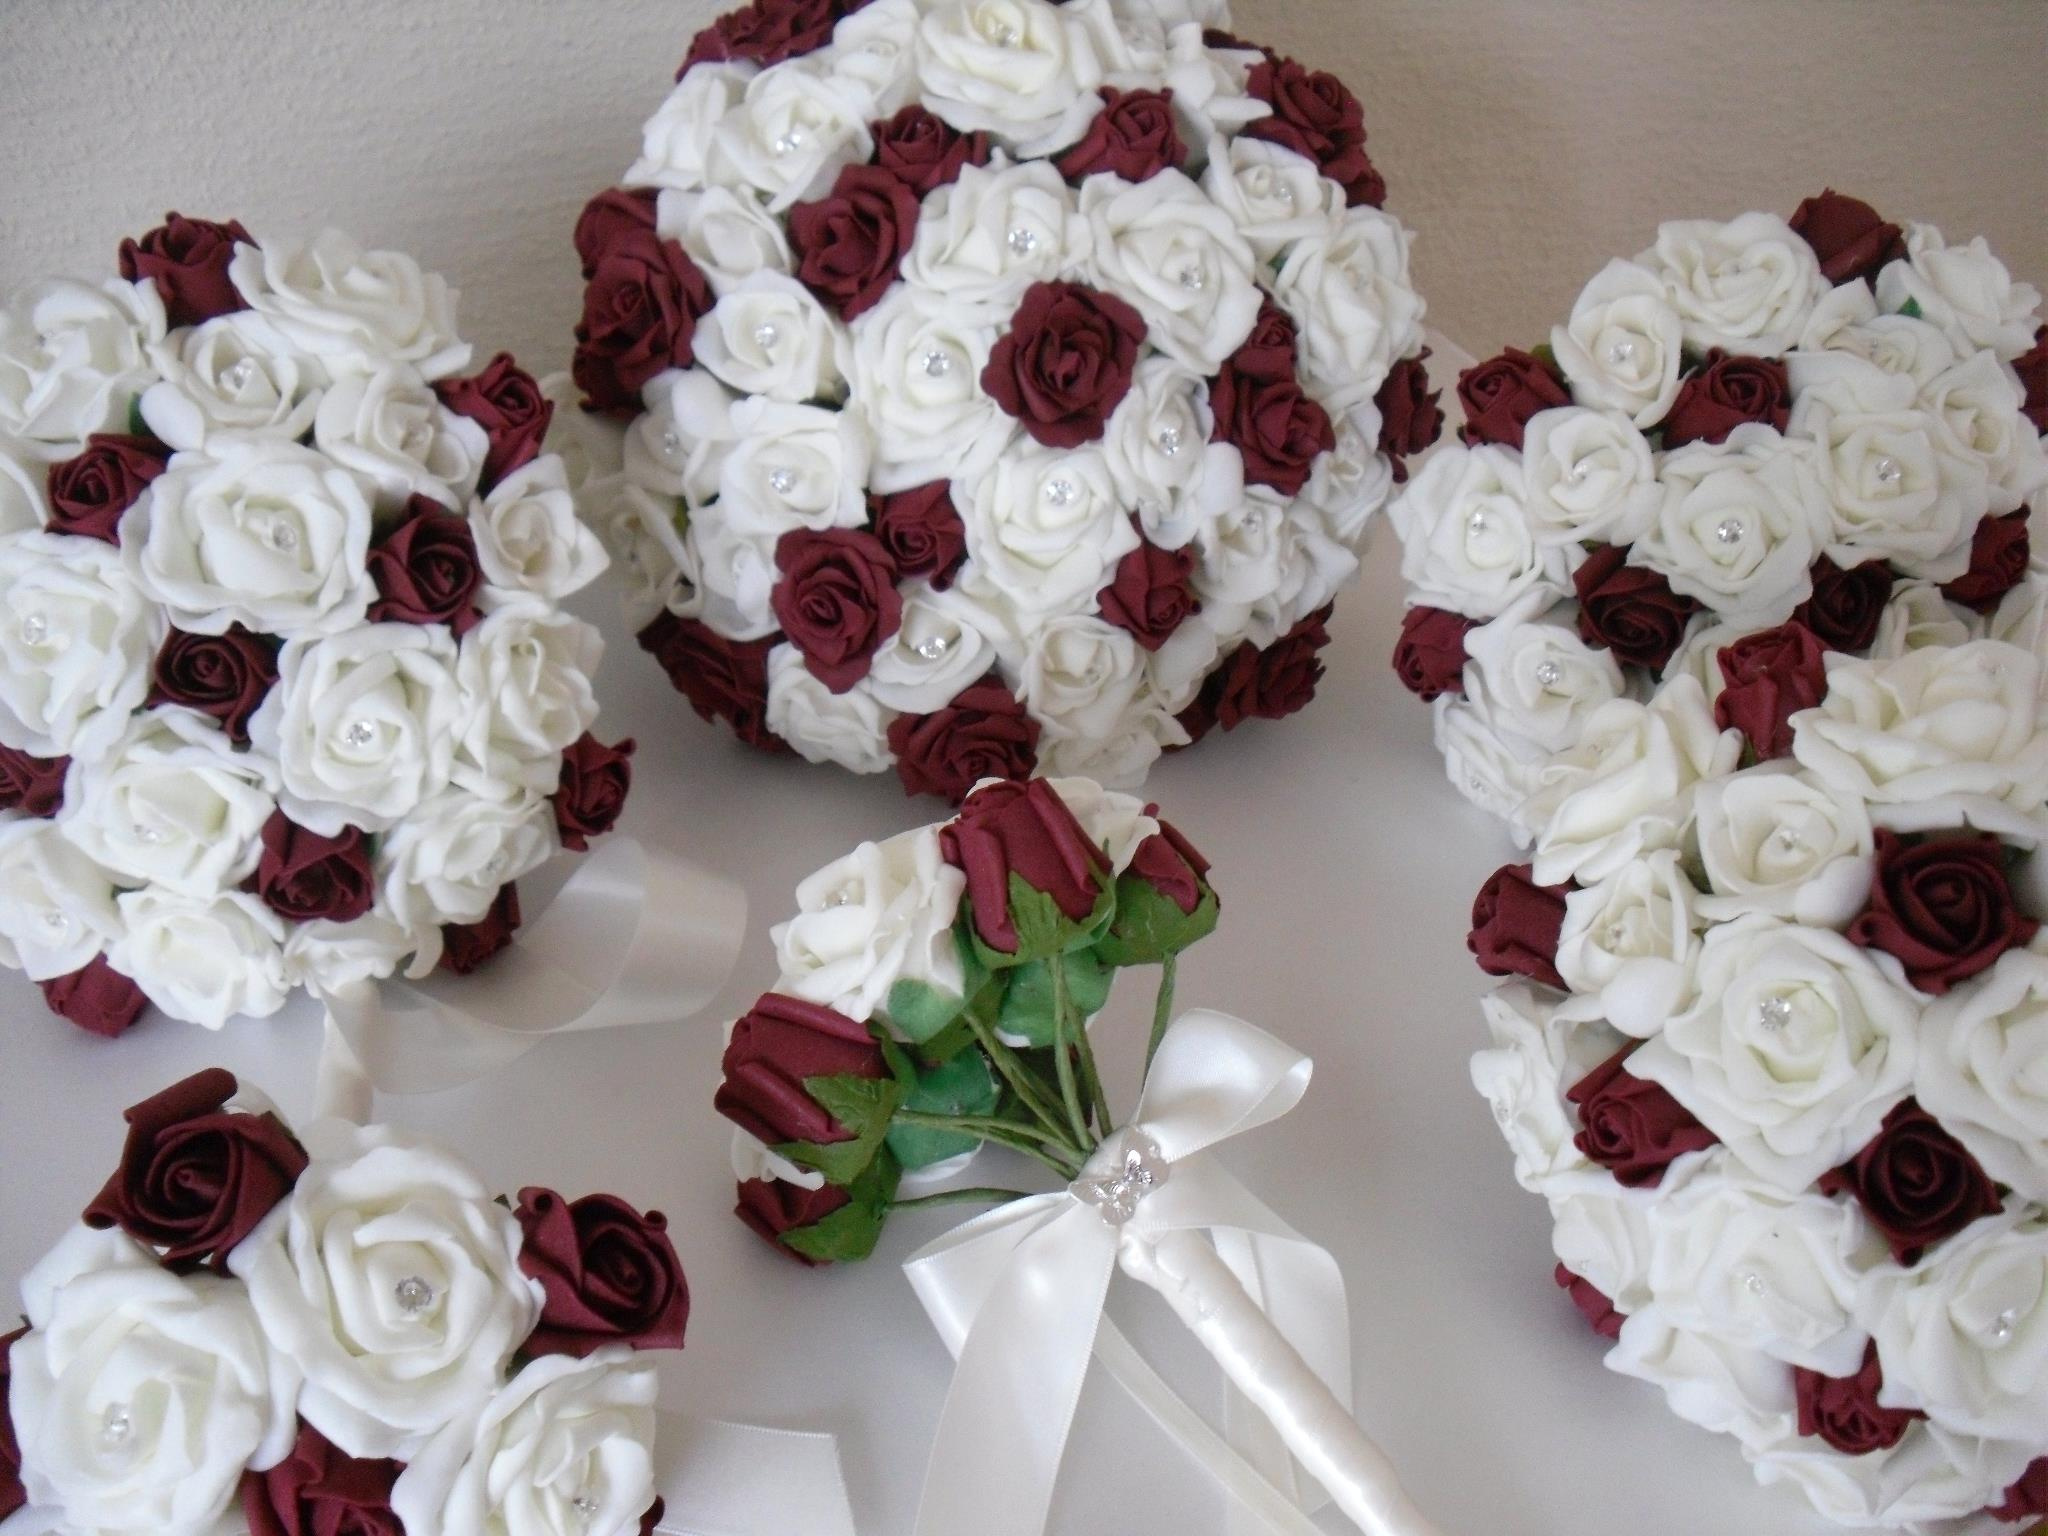 Angel Floral Designs Design And Produce Bouquets